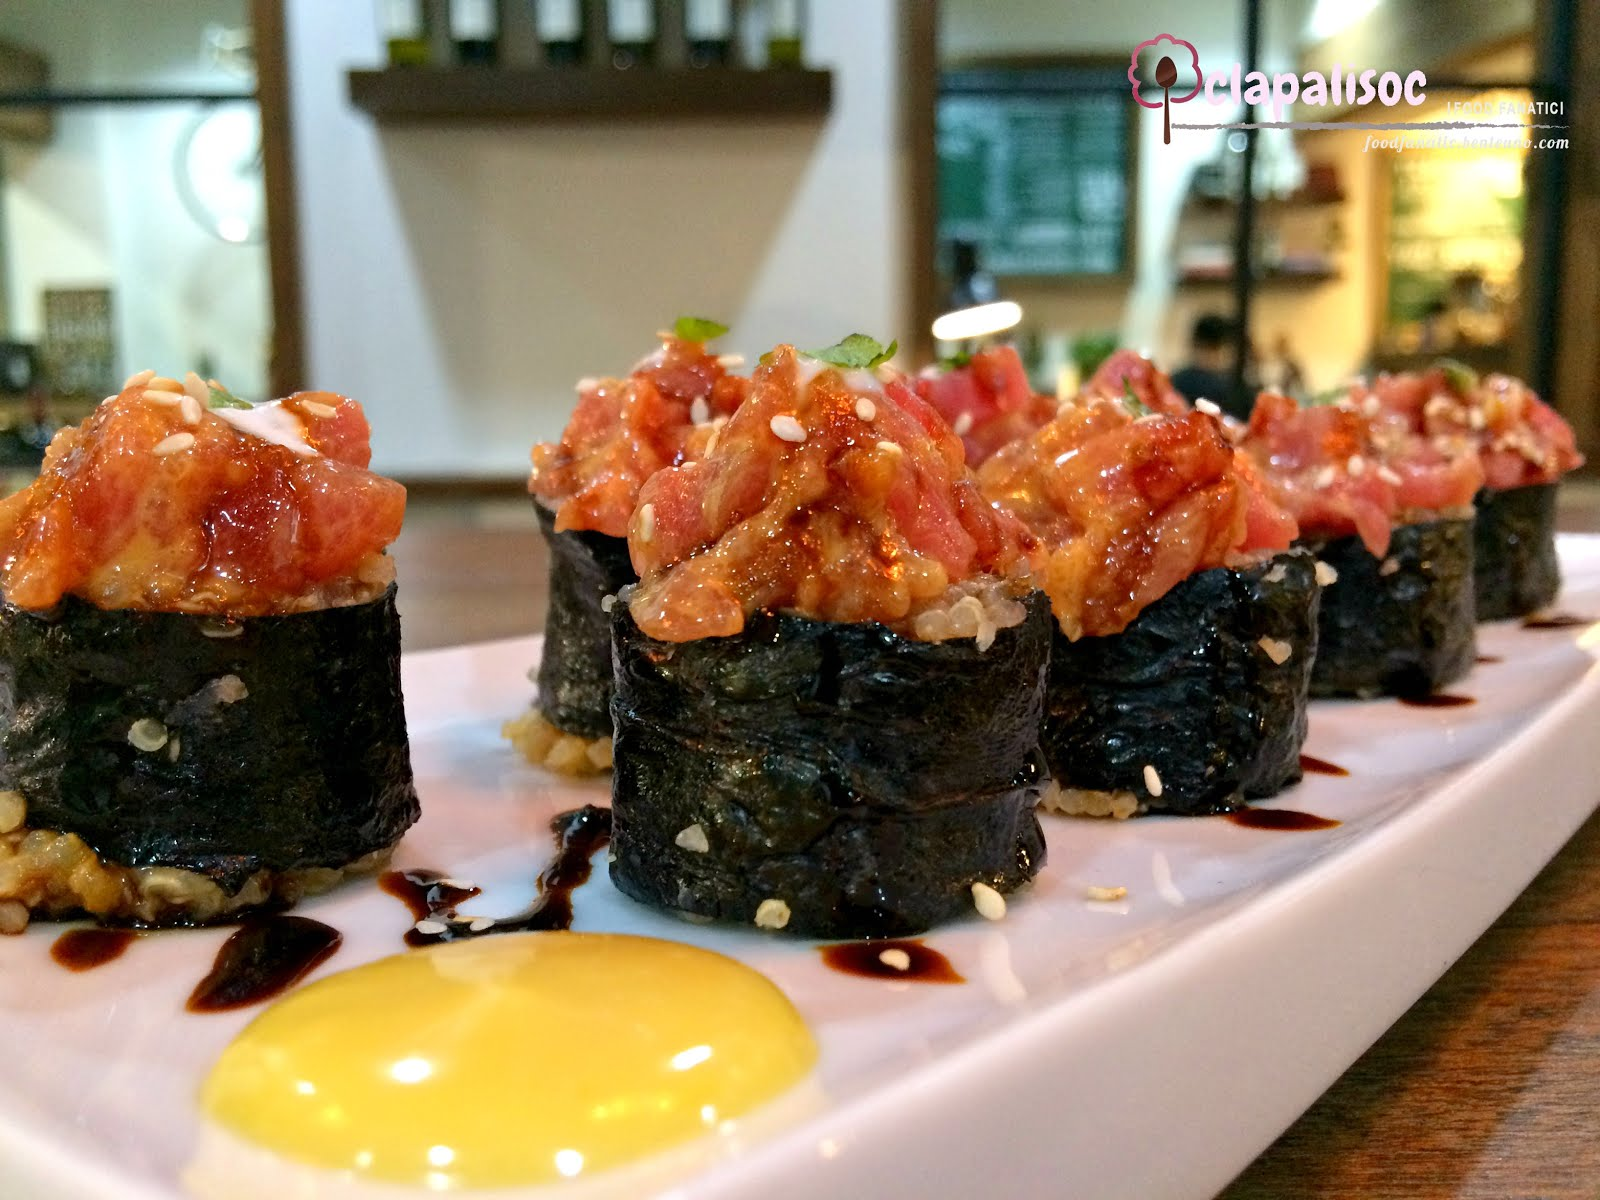 Runners Kitchen Build Your Own Island Runner S Healthy Organic And Delicious Food Spicy Tuna Quinoa Roll From